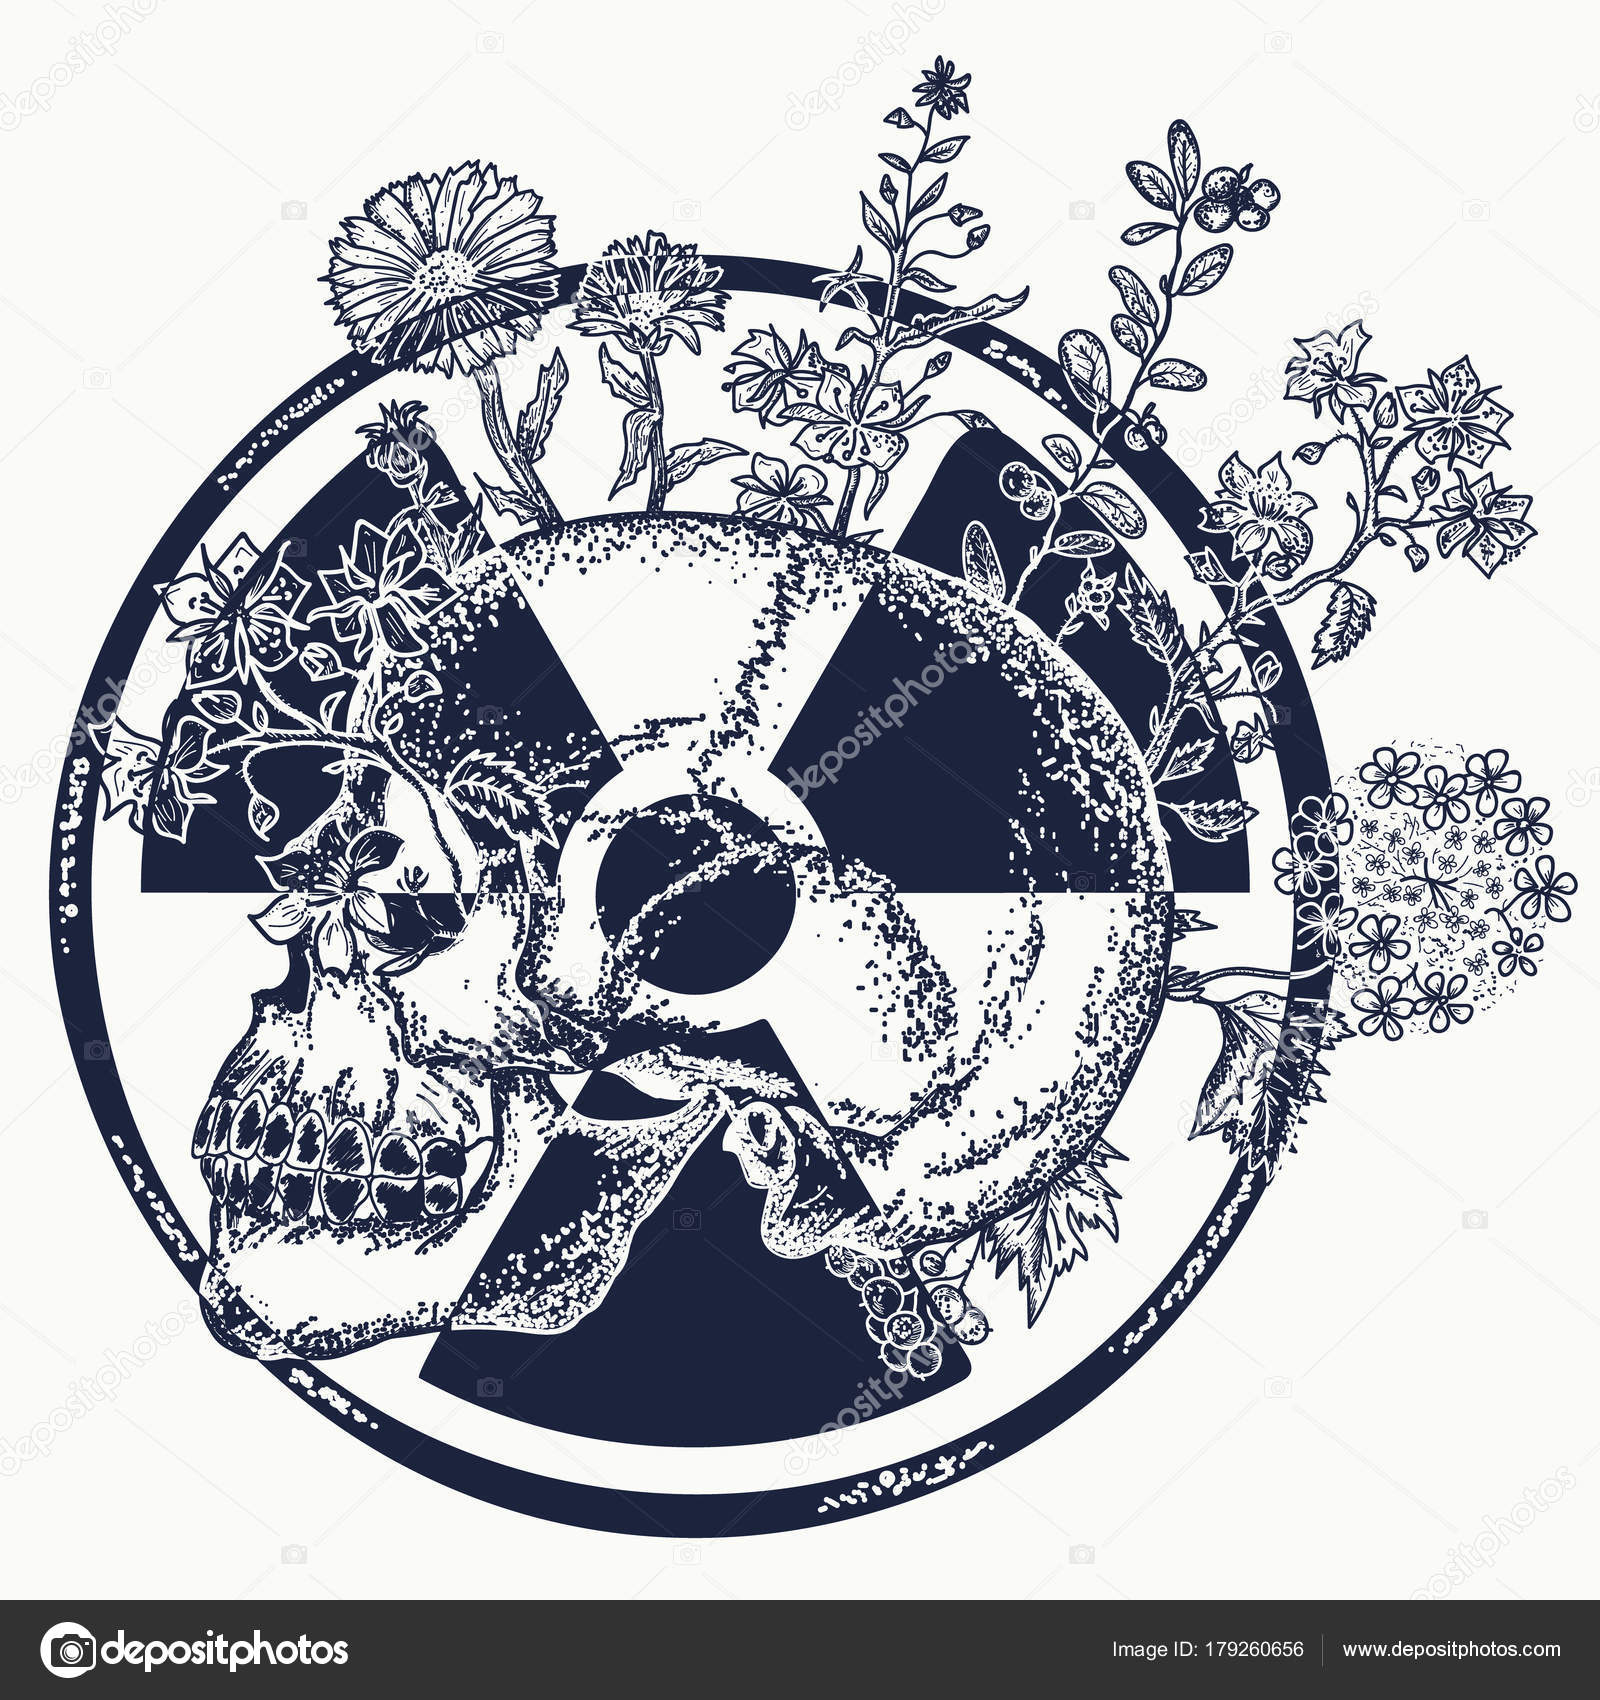 Atomic skull tattoo and t shirt design symbol of nuclear war atomic skull tattoo and t shirt design symbol of nuclear war stock vector biocorpaavc Gallery